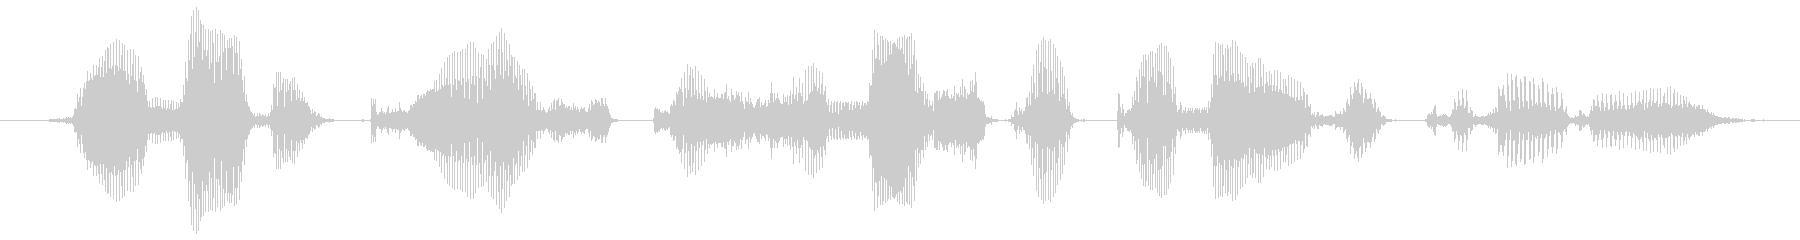 Can you talk to me too casually?'s unreproduced waveform